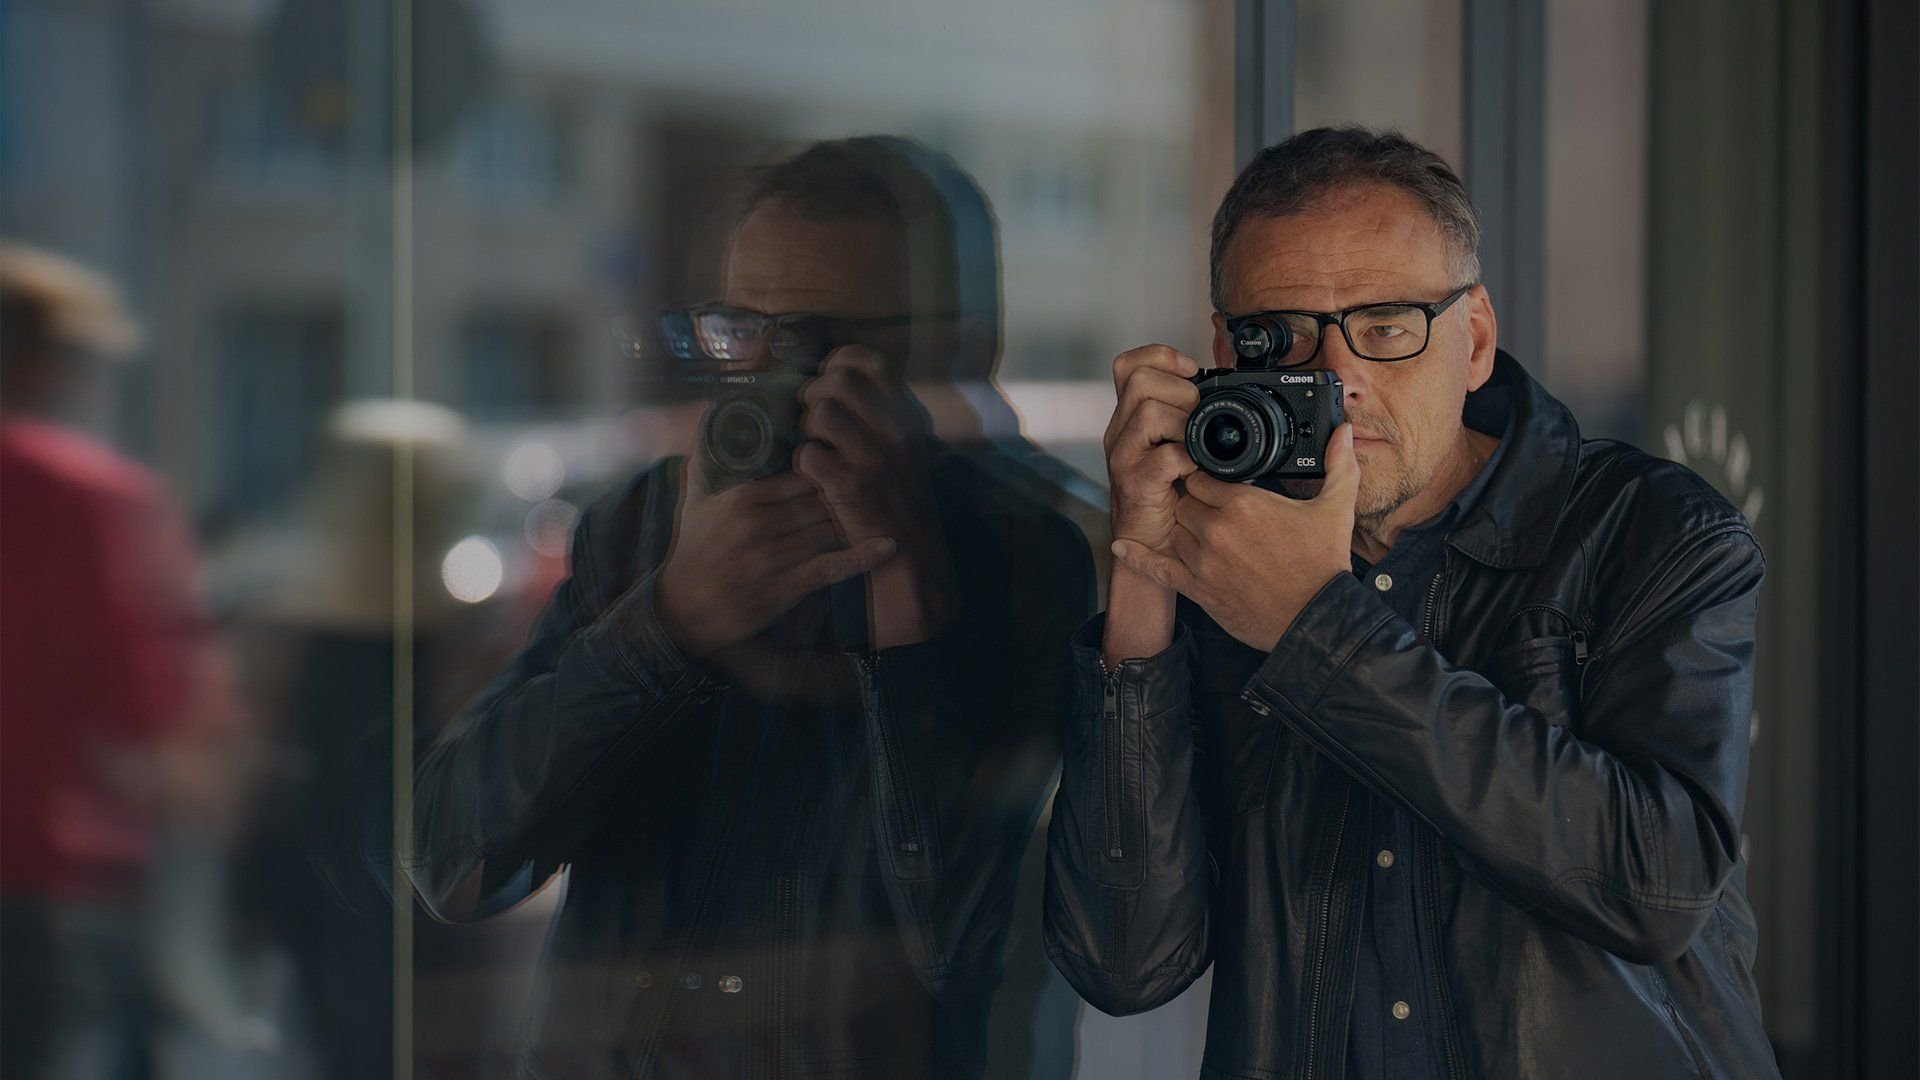 Piotr Malecki shooting on the streets of Warsaw with a Canon EOS M6 Mark II.